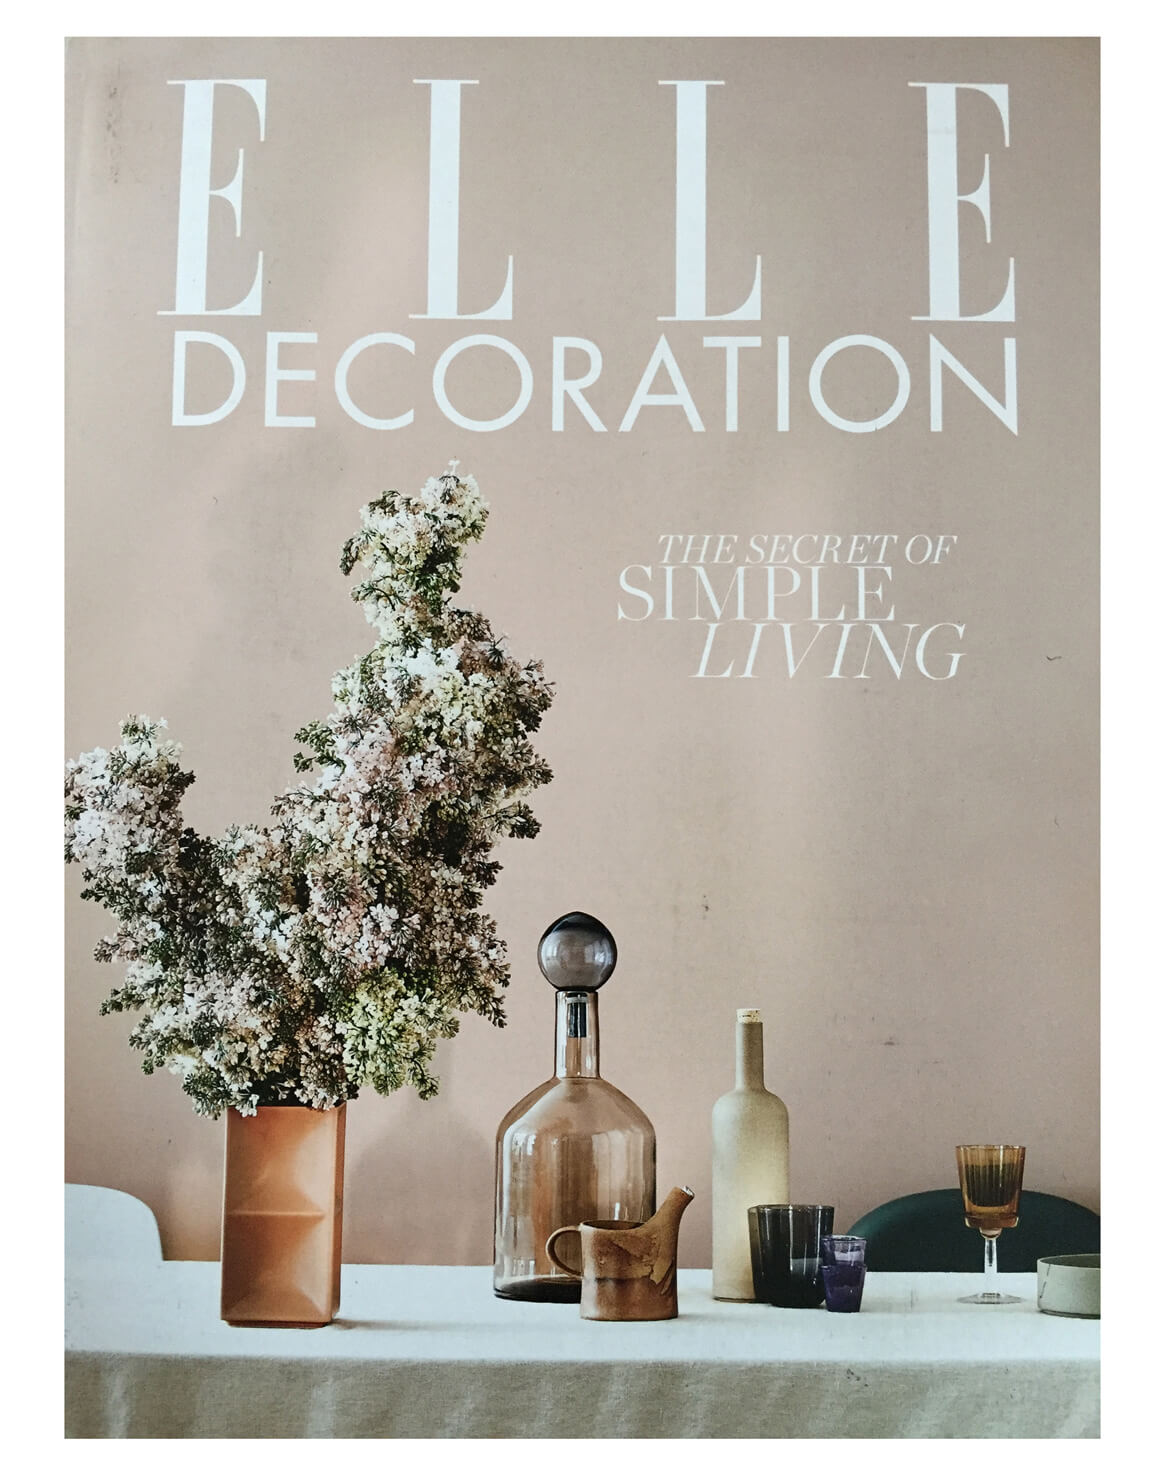 Chalk & Moss has been featured as one of the UK's best homeware websites (May 2018 issue, out in shops 5 April). Turn to page 63 for the Chalk & Moss writeup.